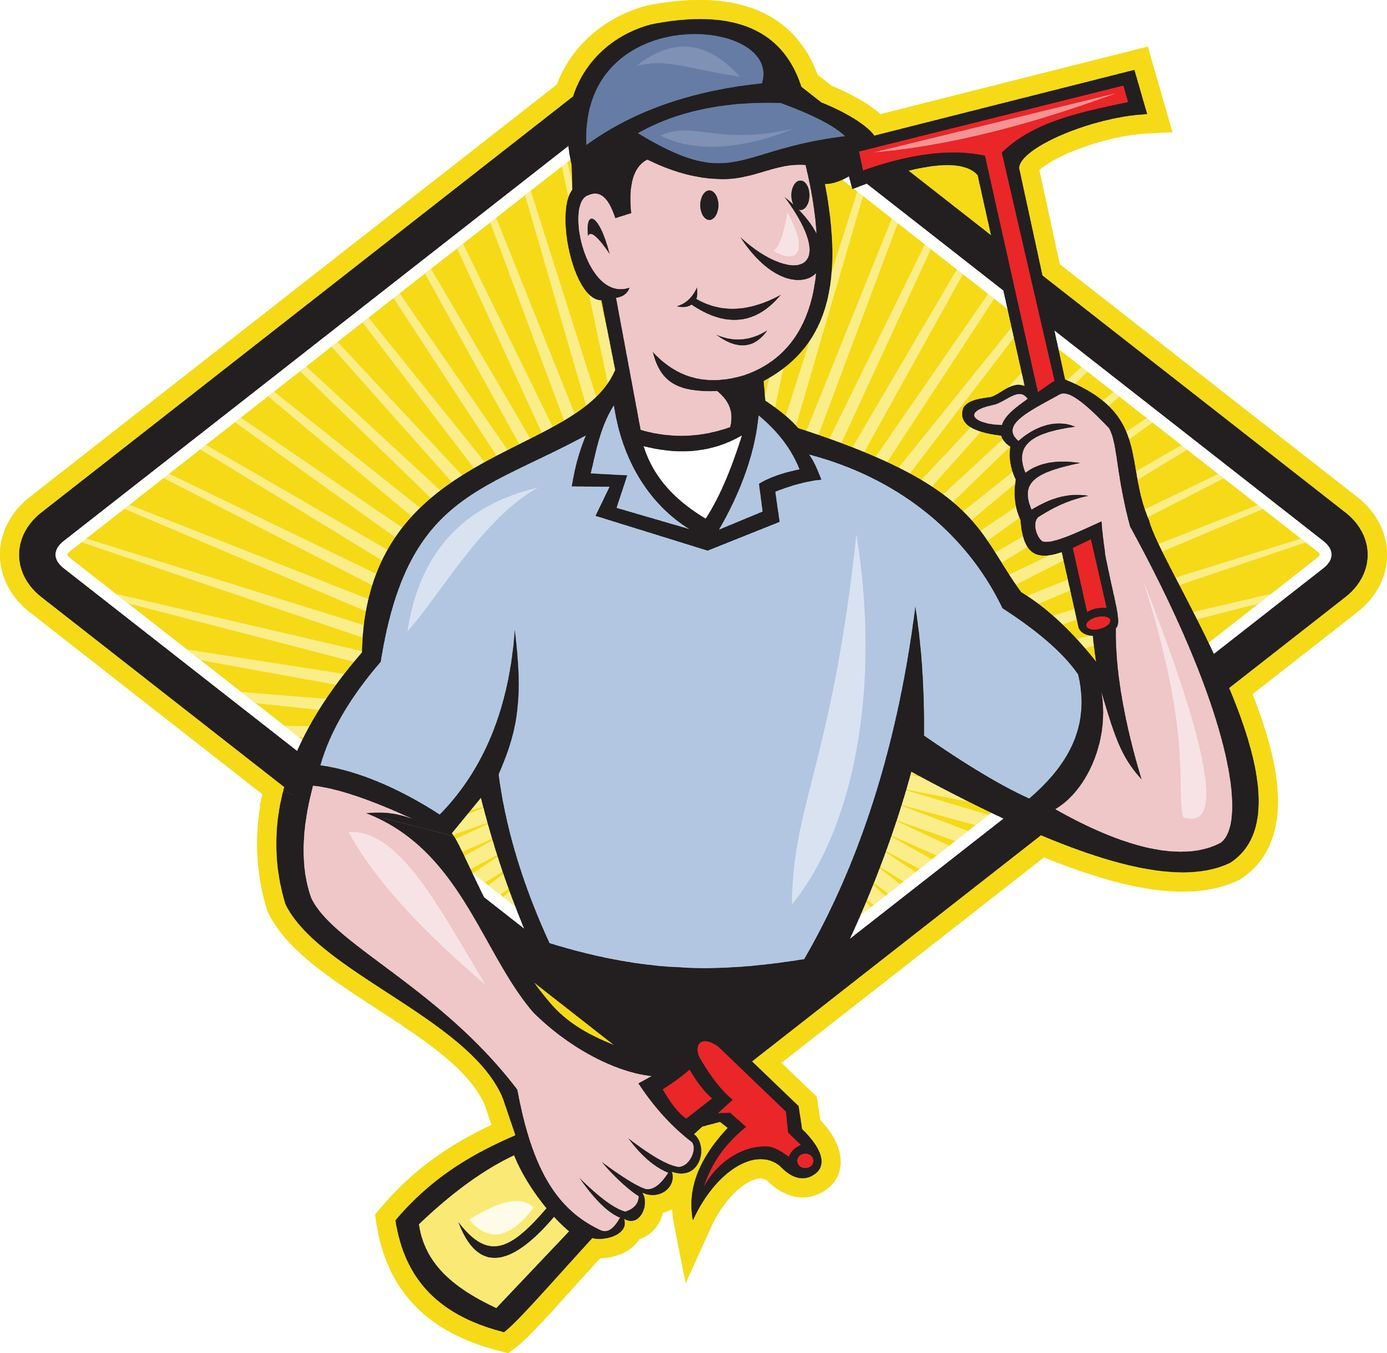 Cleaning Services Clipart Images & Pictures - Becuo